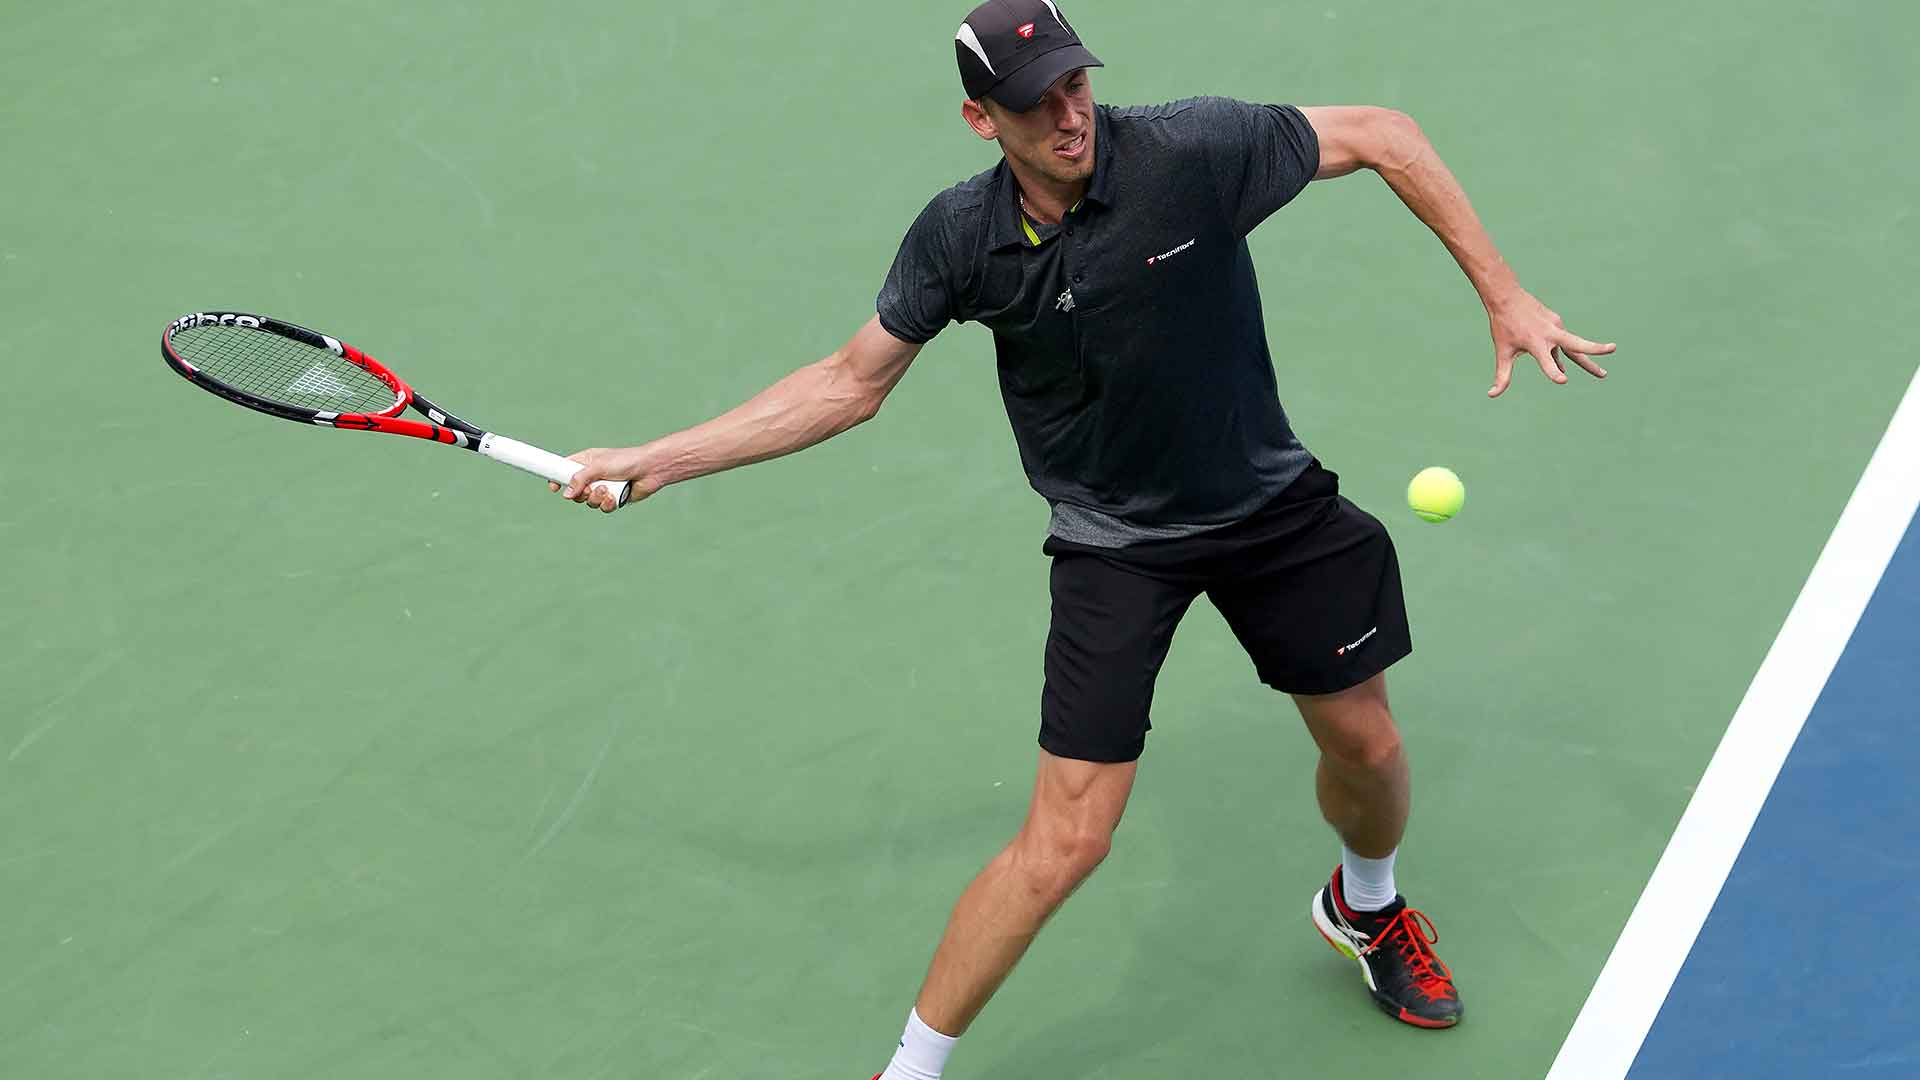 John Millman is into his first ATP World Tour semi-final after downing Richard Gasquet.